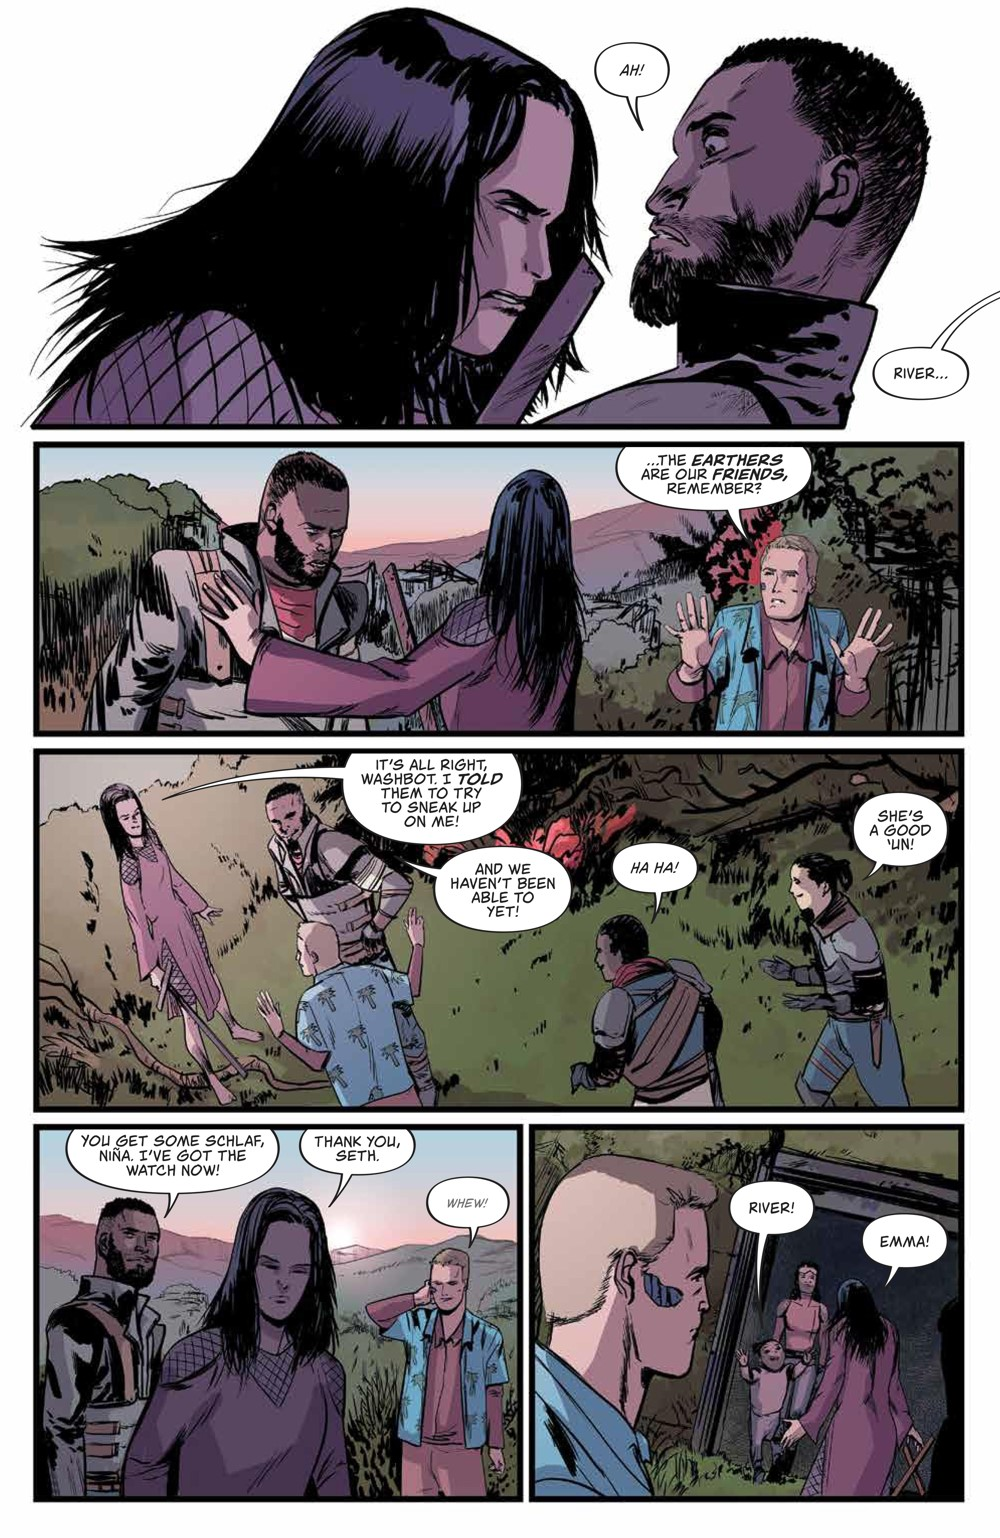 Firefly_031_PRESS_6 ComicList Previews: FIREFLY #31